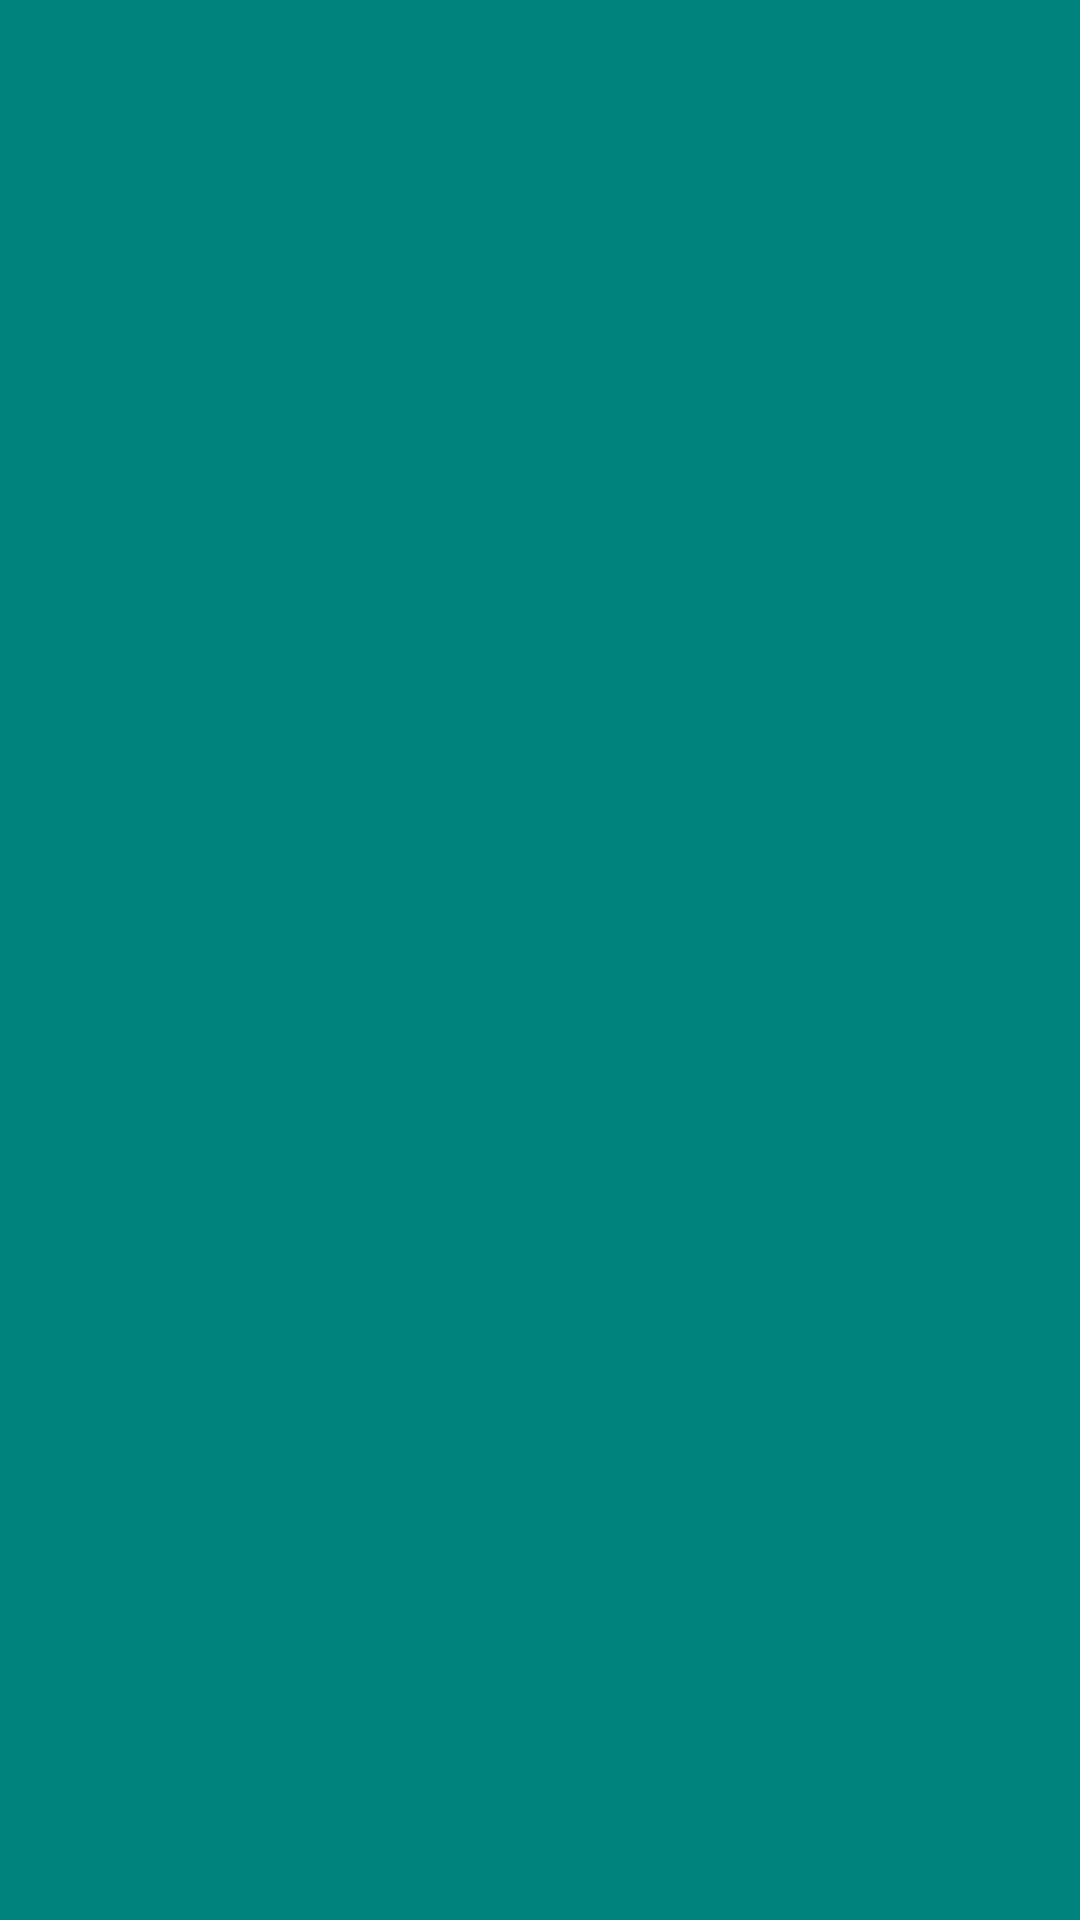 1080x1920 Teal Green Solid Color Background